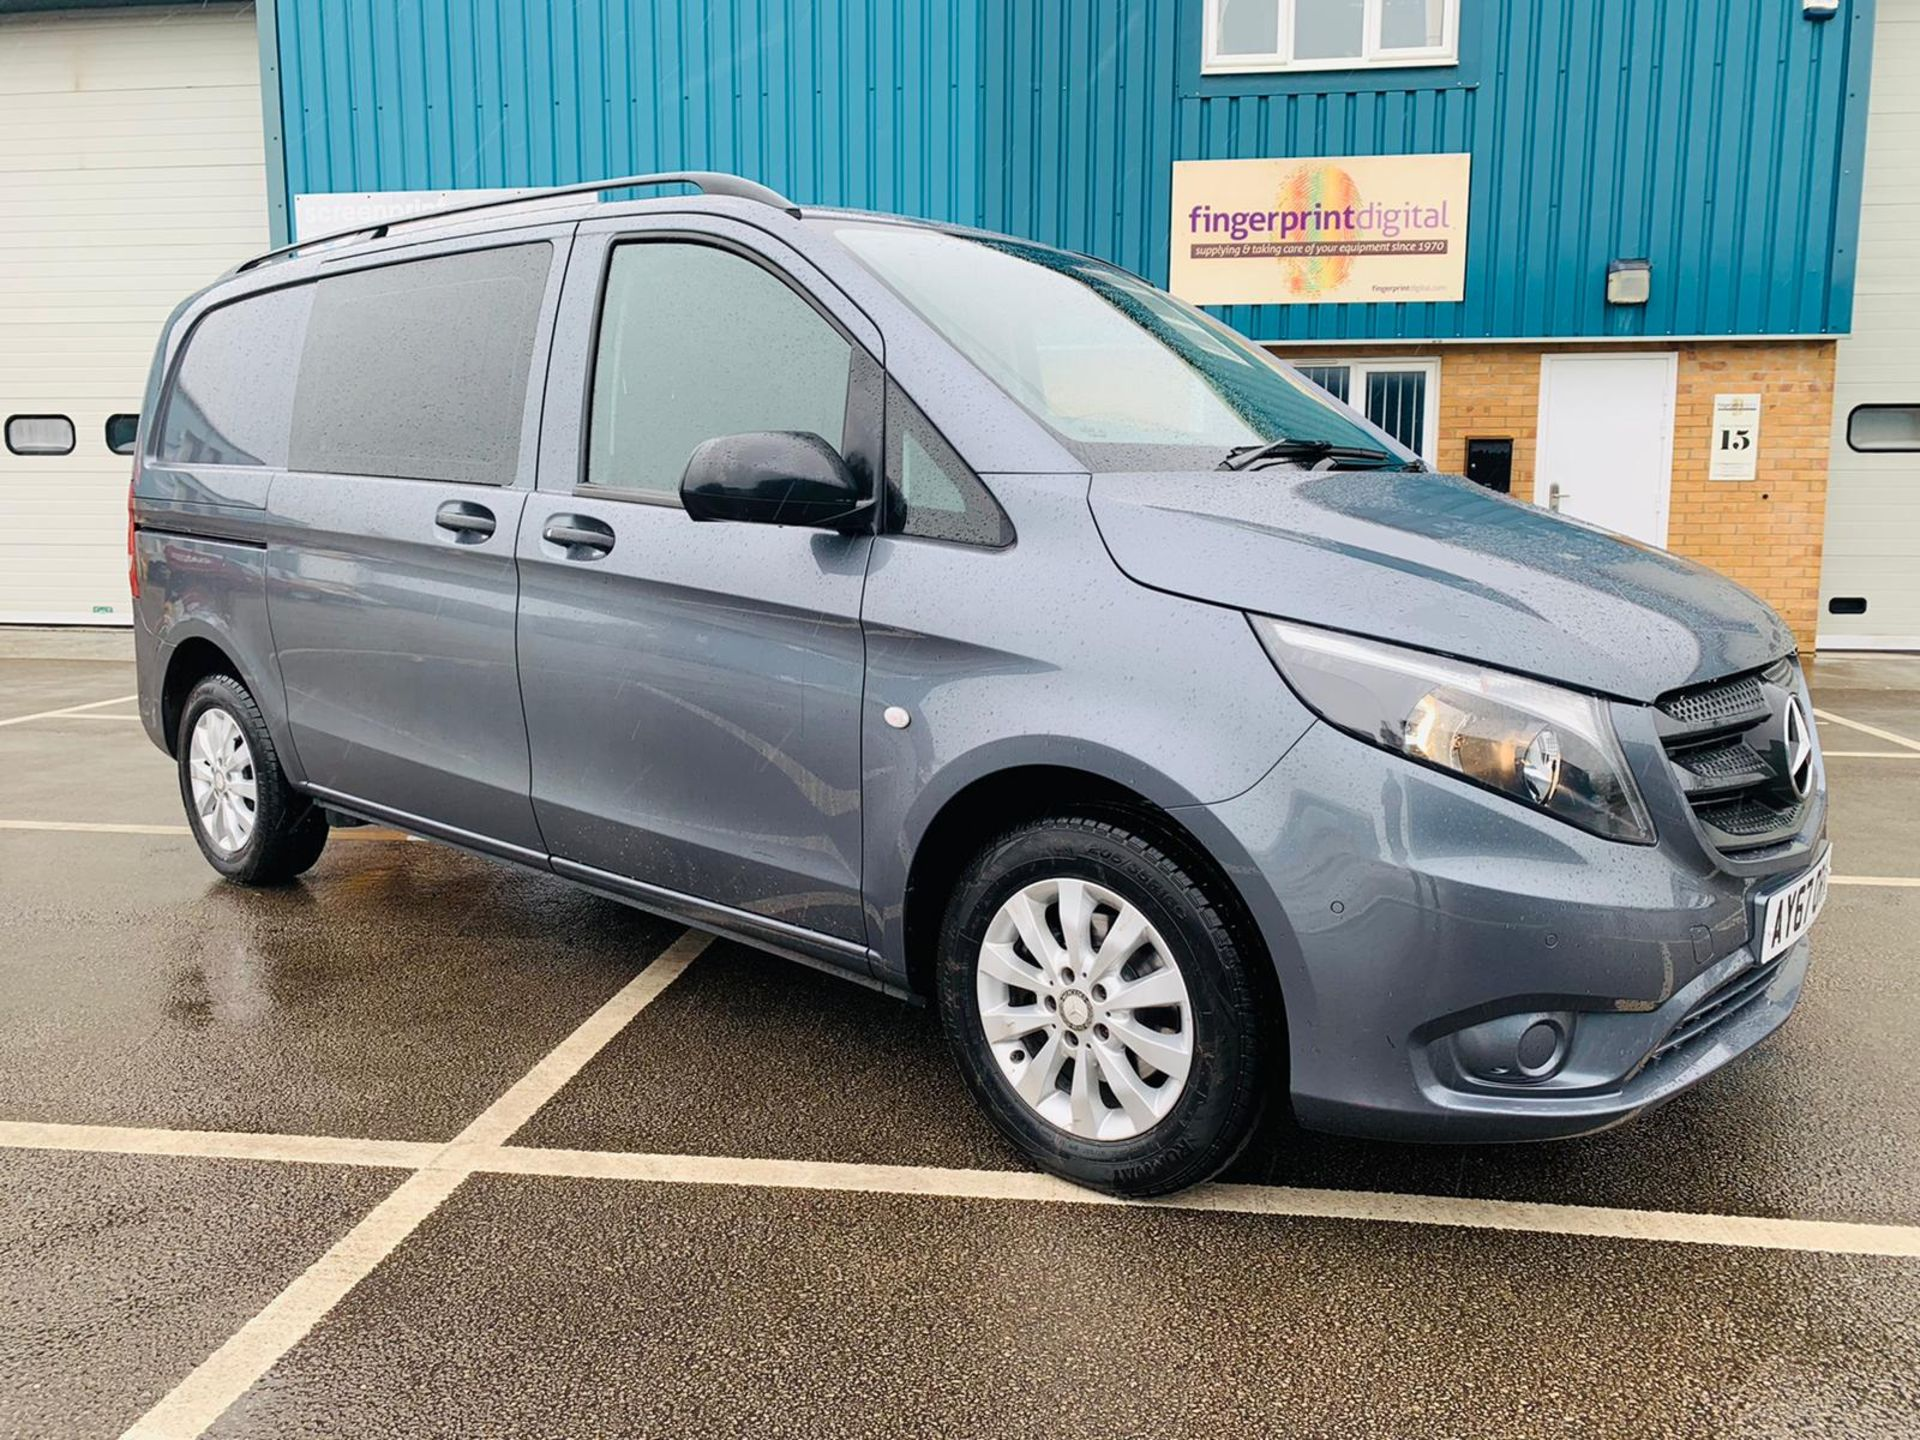 Mercedes Vito 114 Bluetec Dualiner/Crew Van - Auto - Air Con - 2018 Model- 1 Owner From New - Image 8 of 30